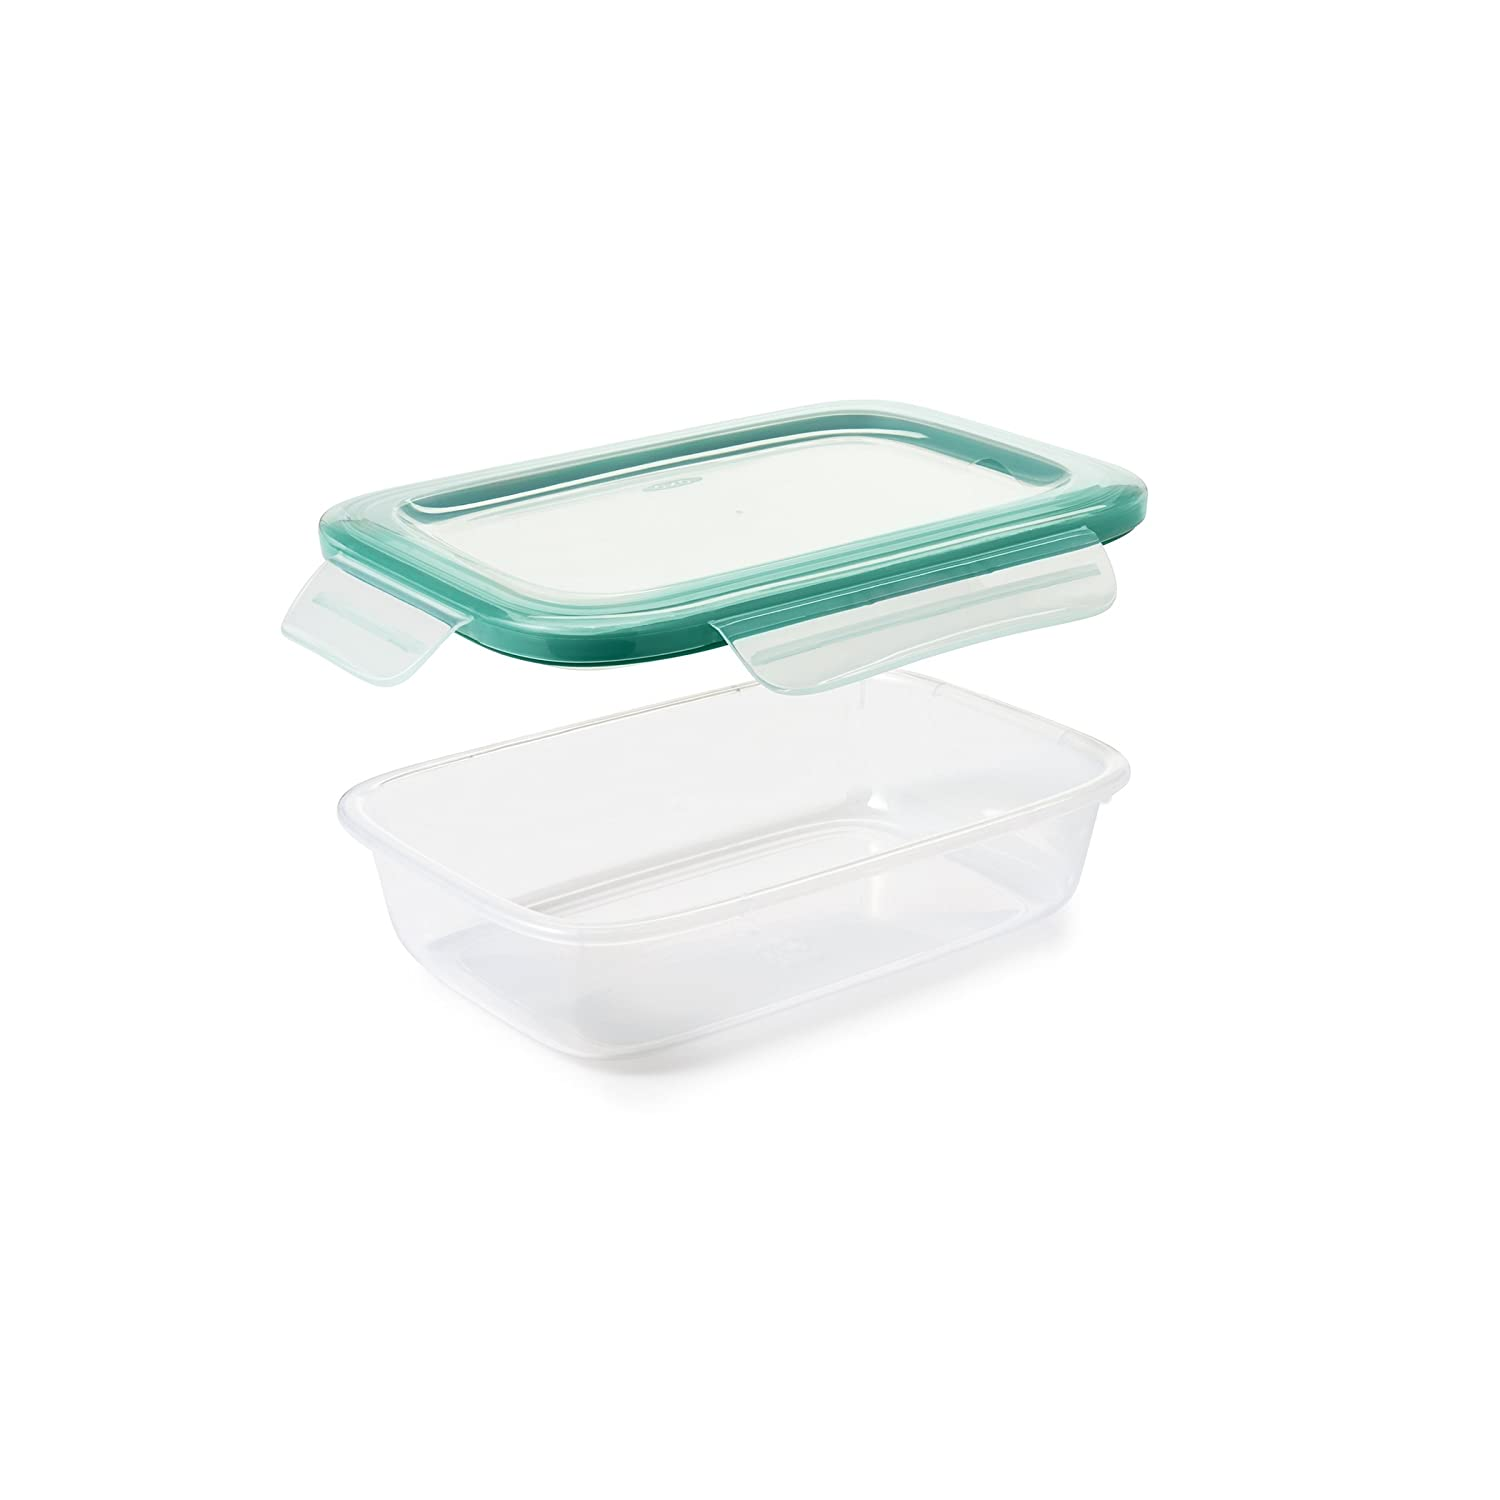 Amazoncom Oxo Good Grips 51 Cup Snap Leakproof Food Storage